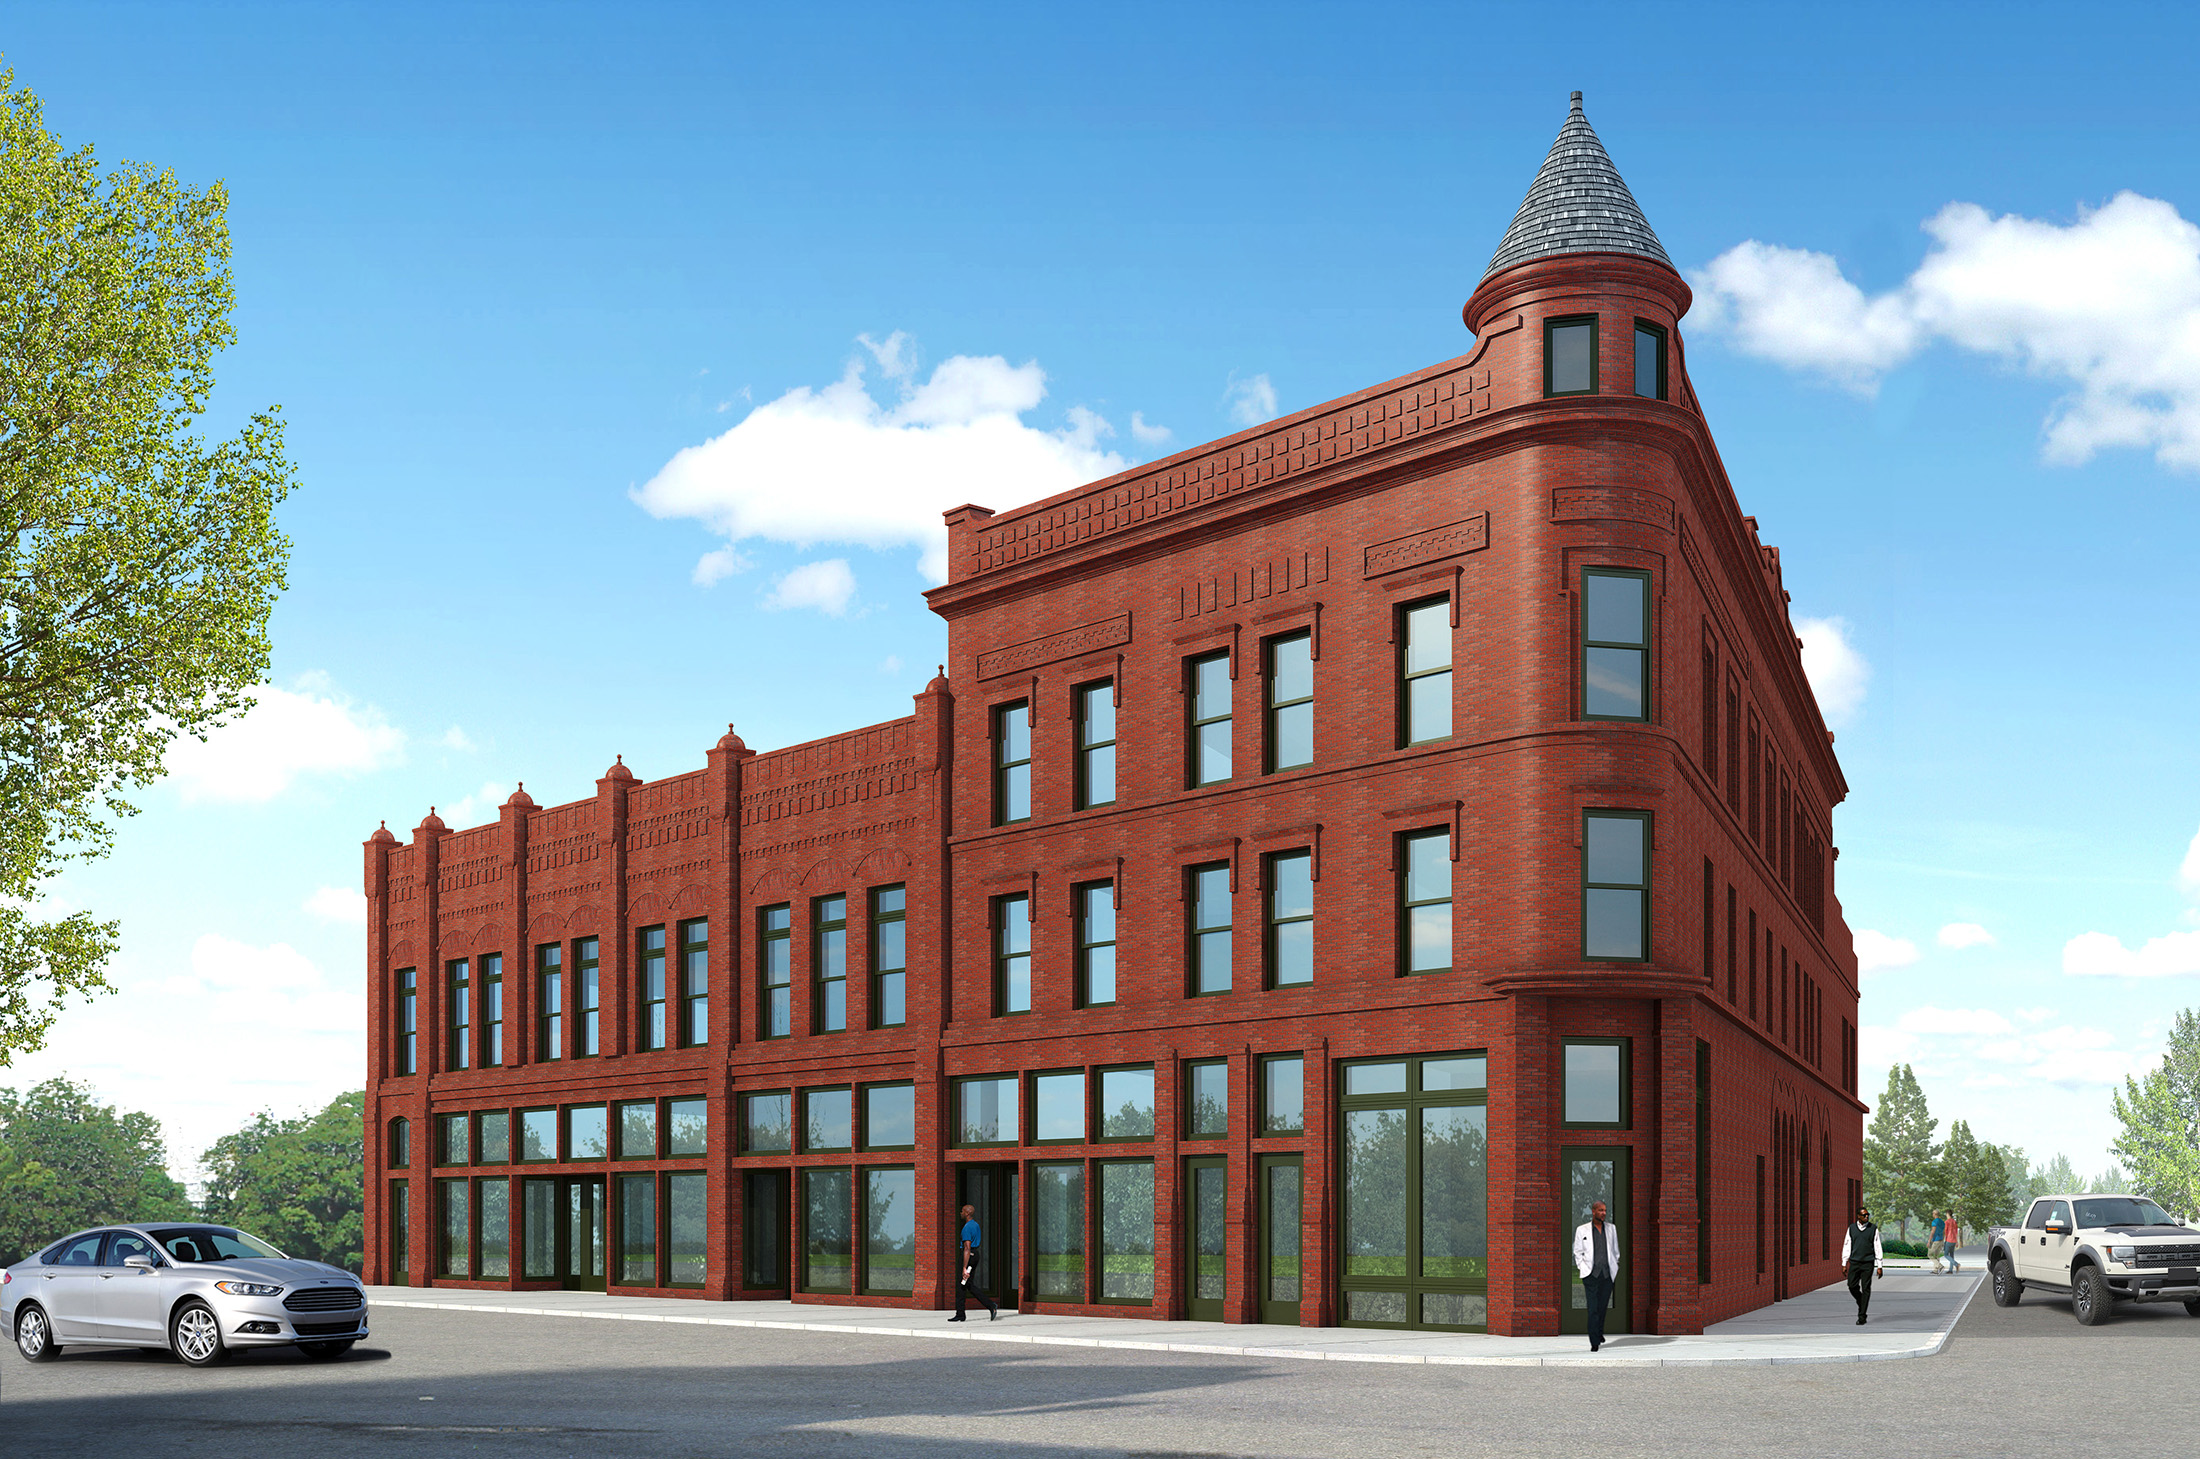 Warehouse For Sale Detroit Partially Collapsed Grosfield Building To Be Renovated In 4